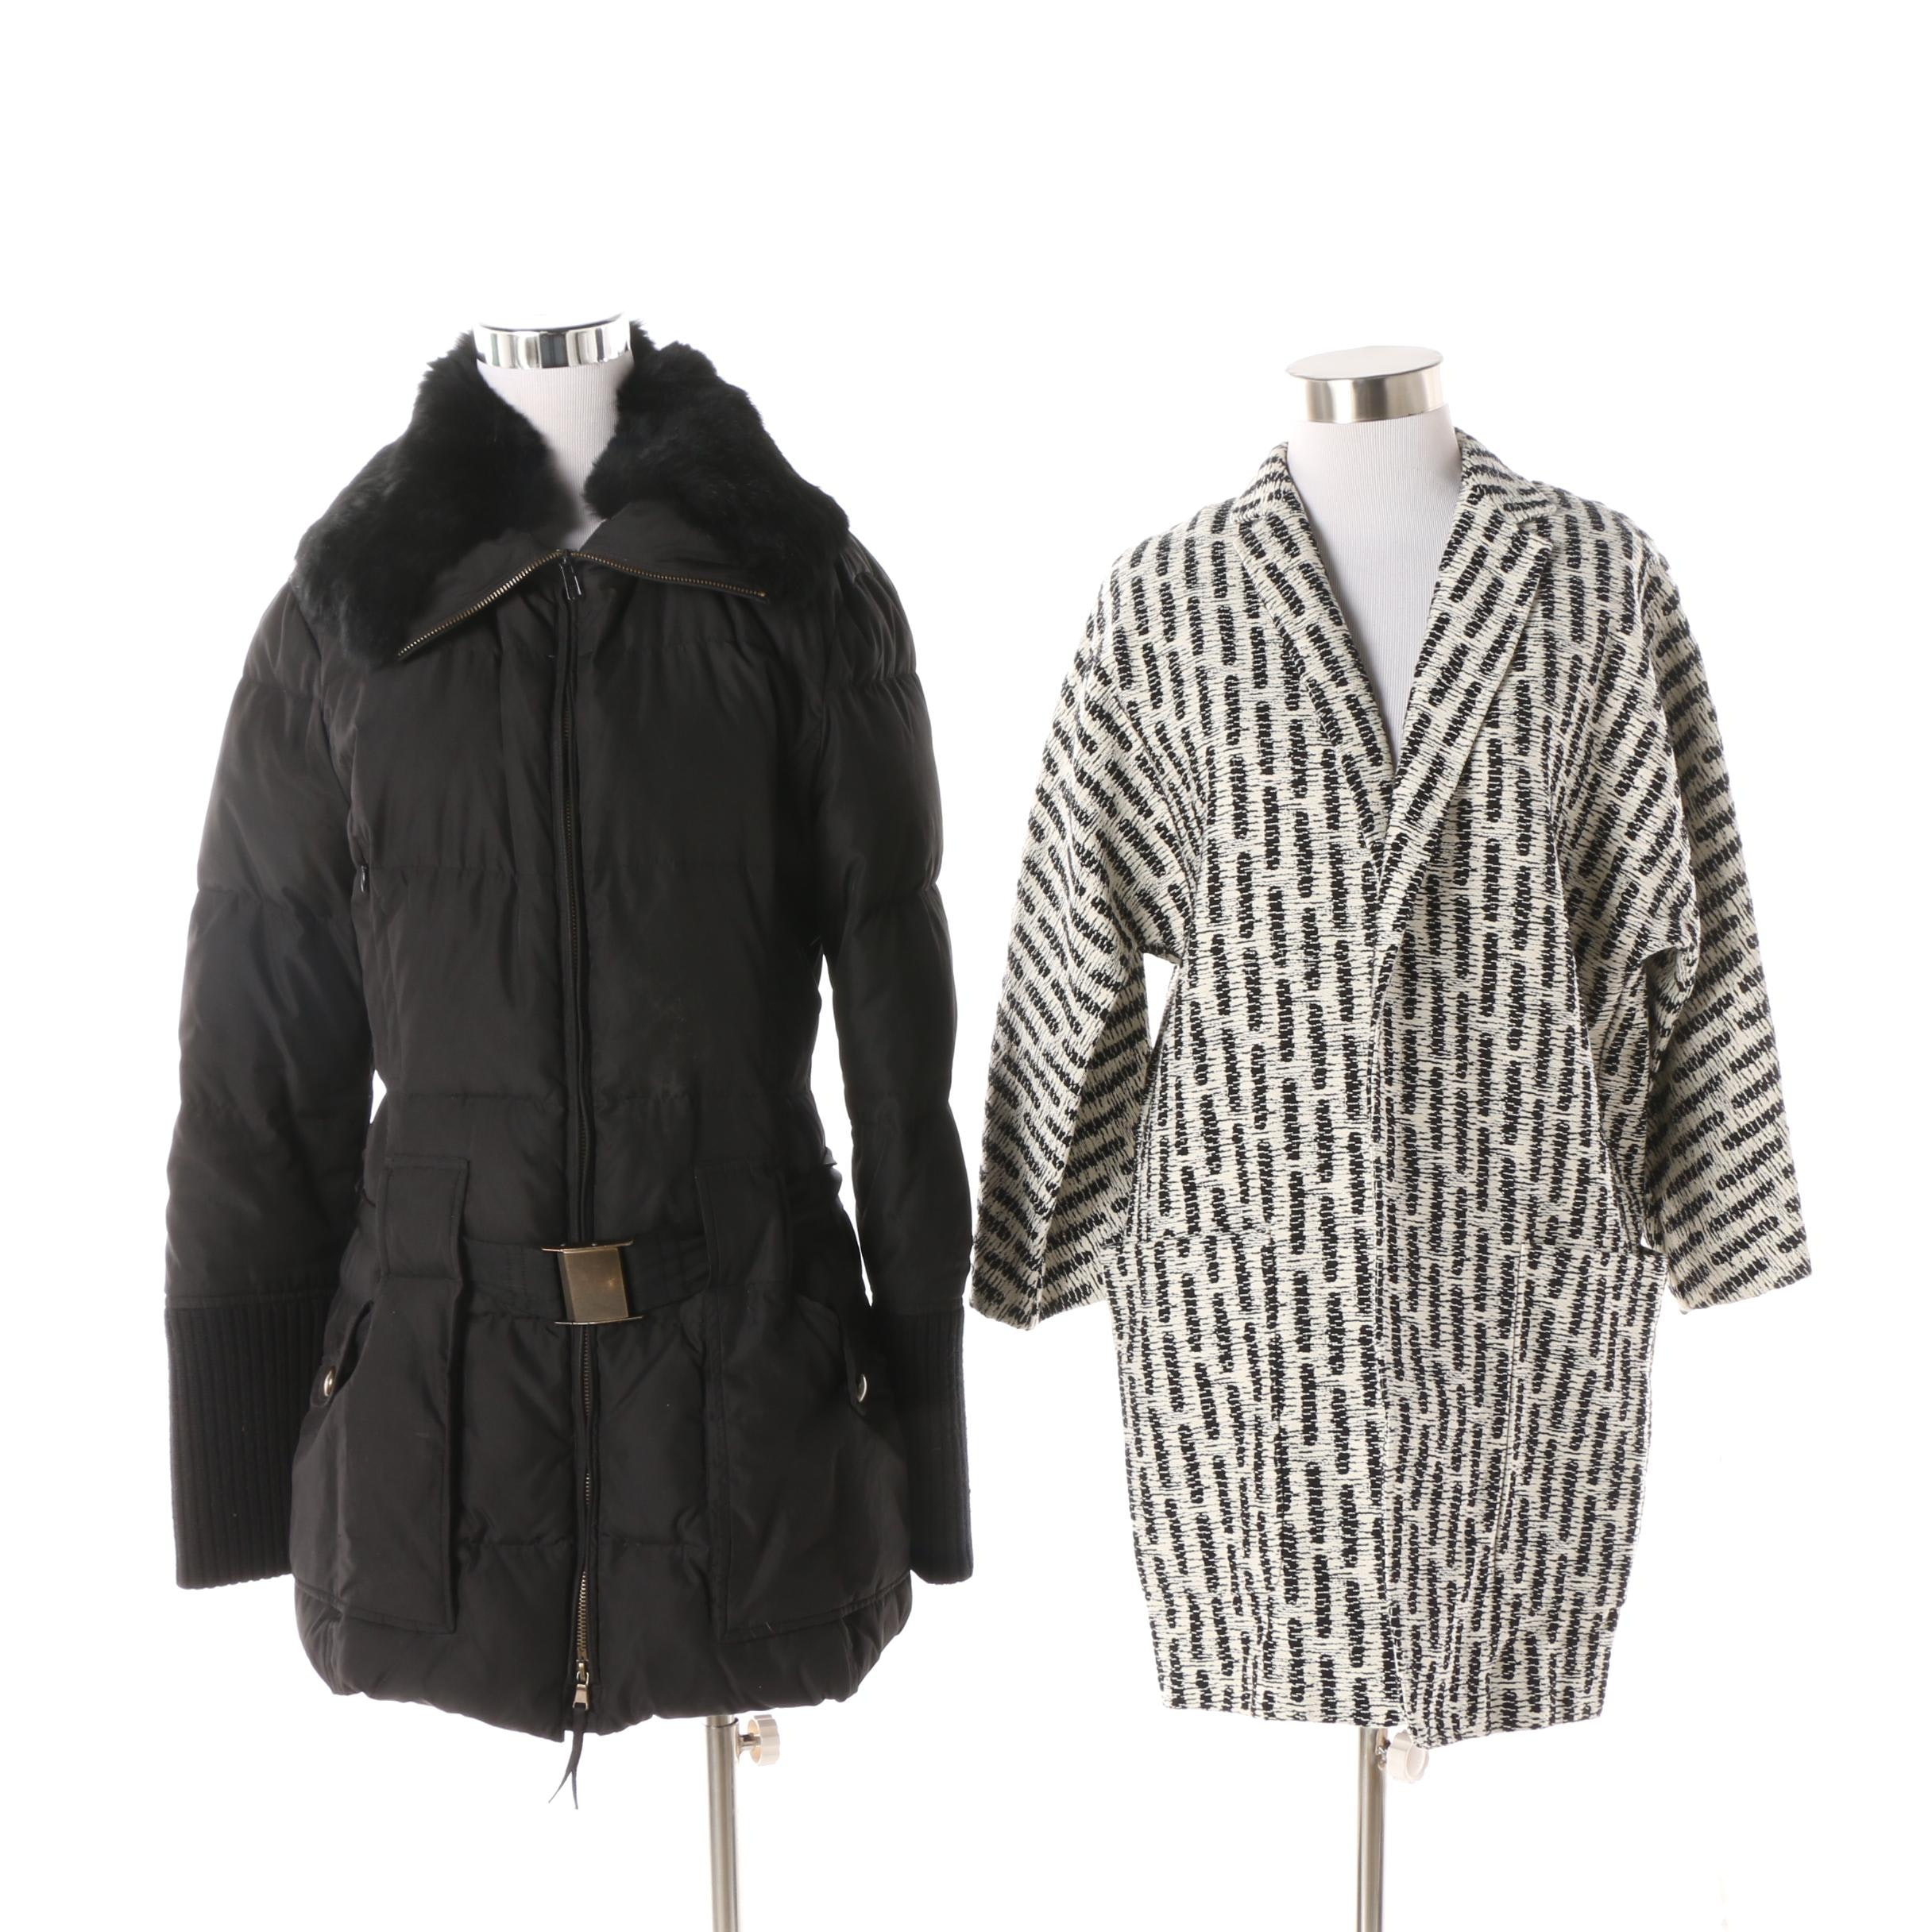 Max Mara Knit Jacket and Max & Co. Black Quilted Parka with Rabbit Fur Collar